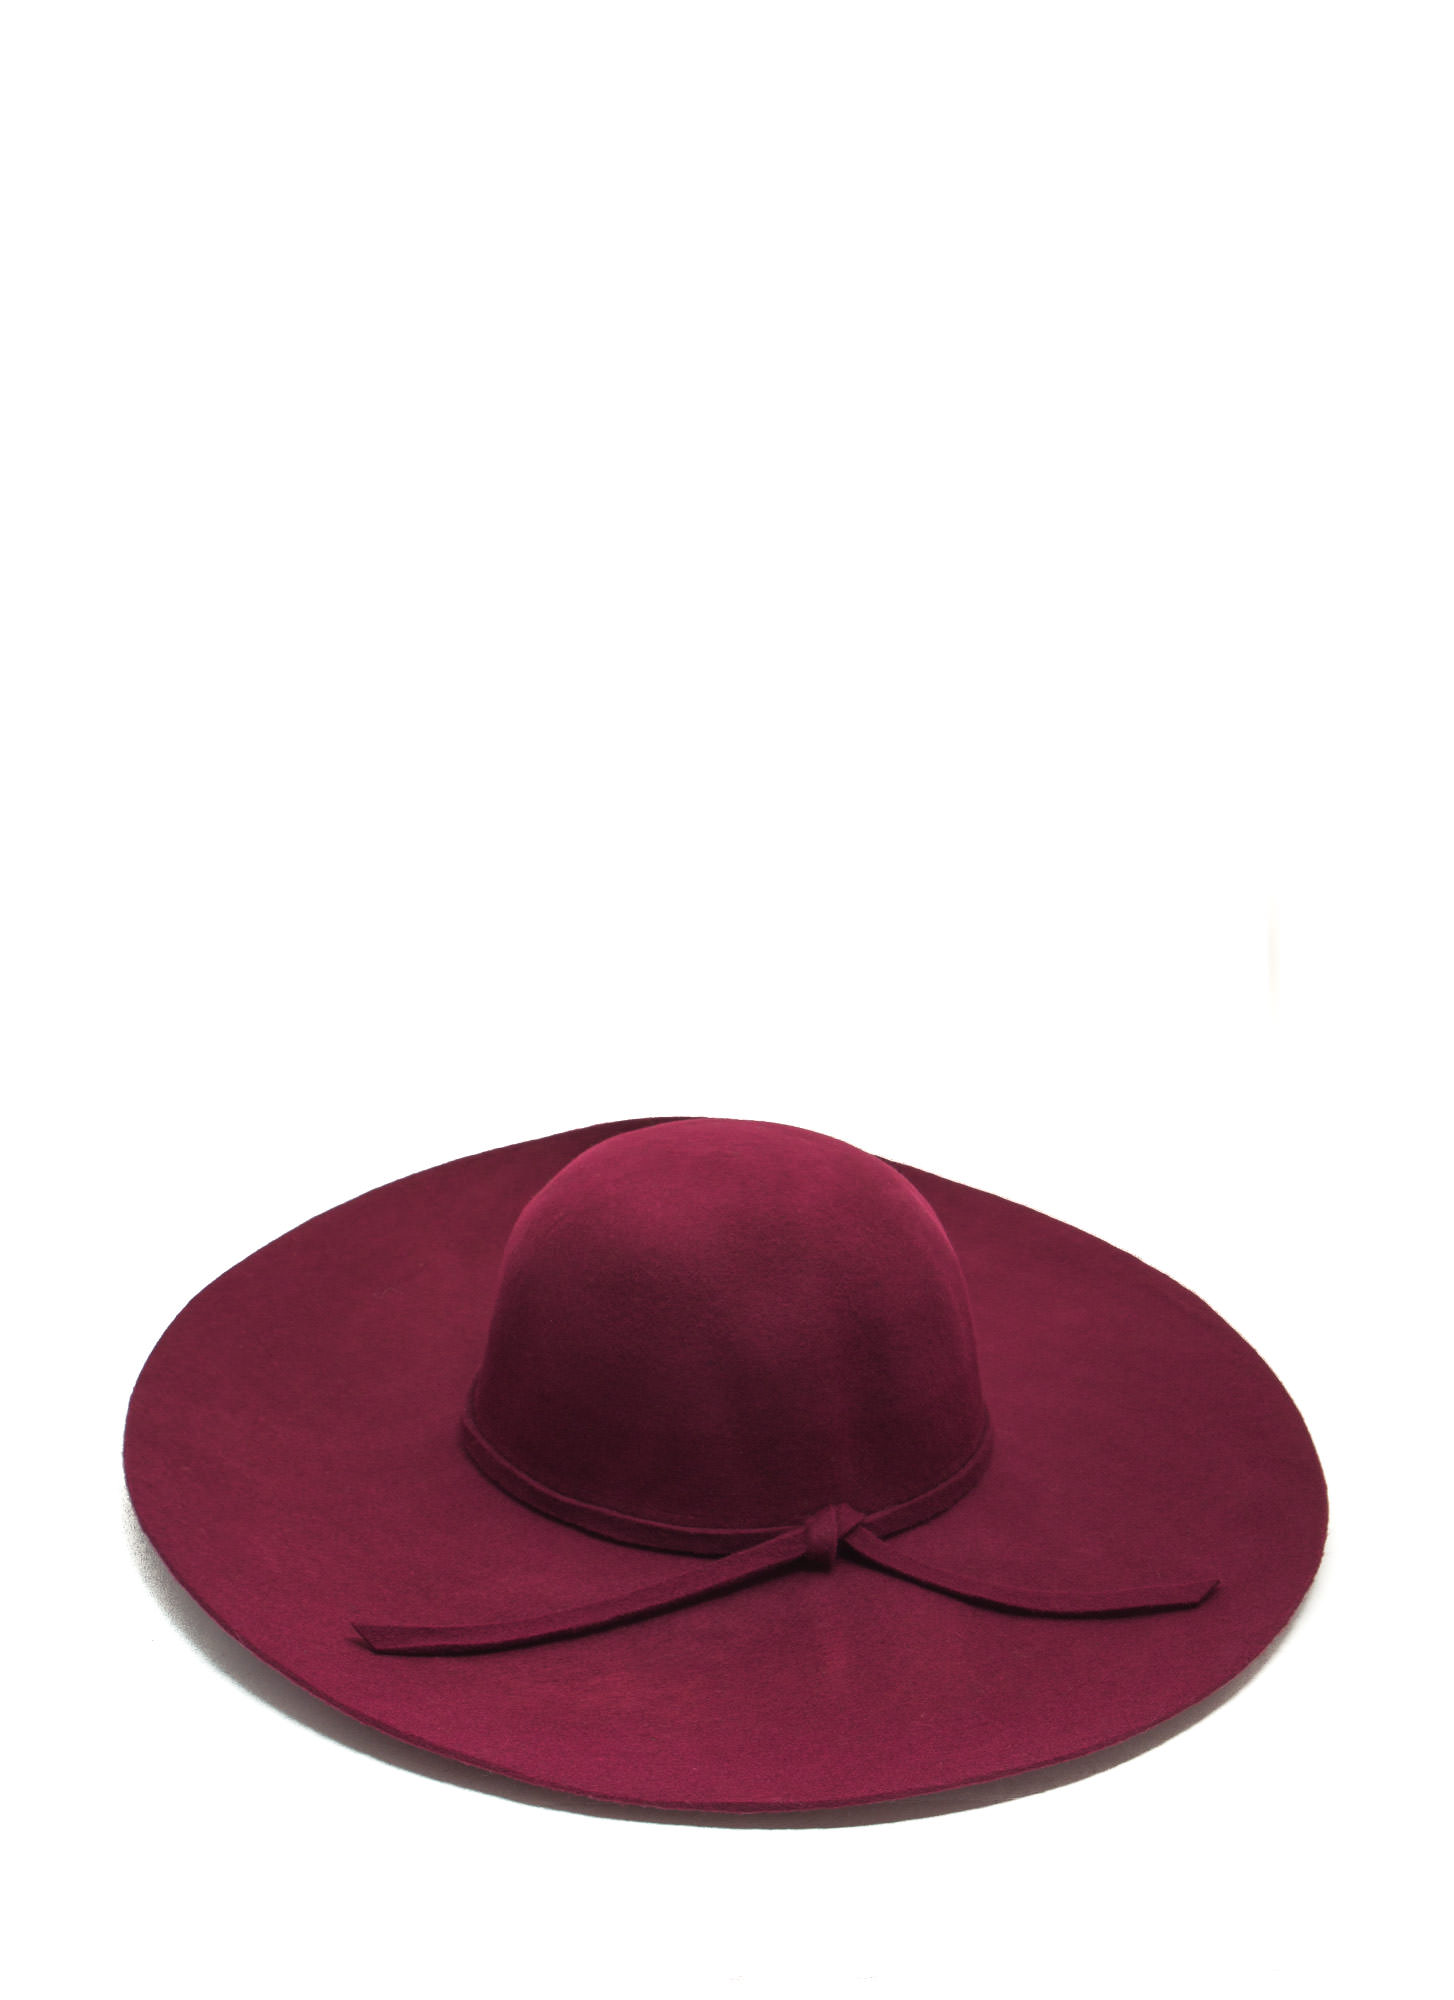 Wide Brim Wool Hat BURGUNDY